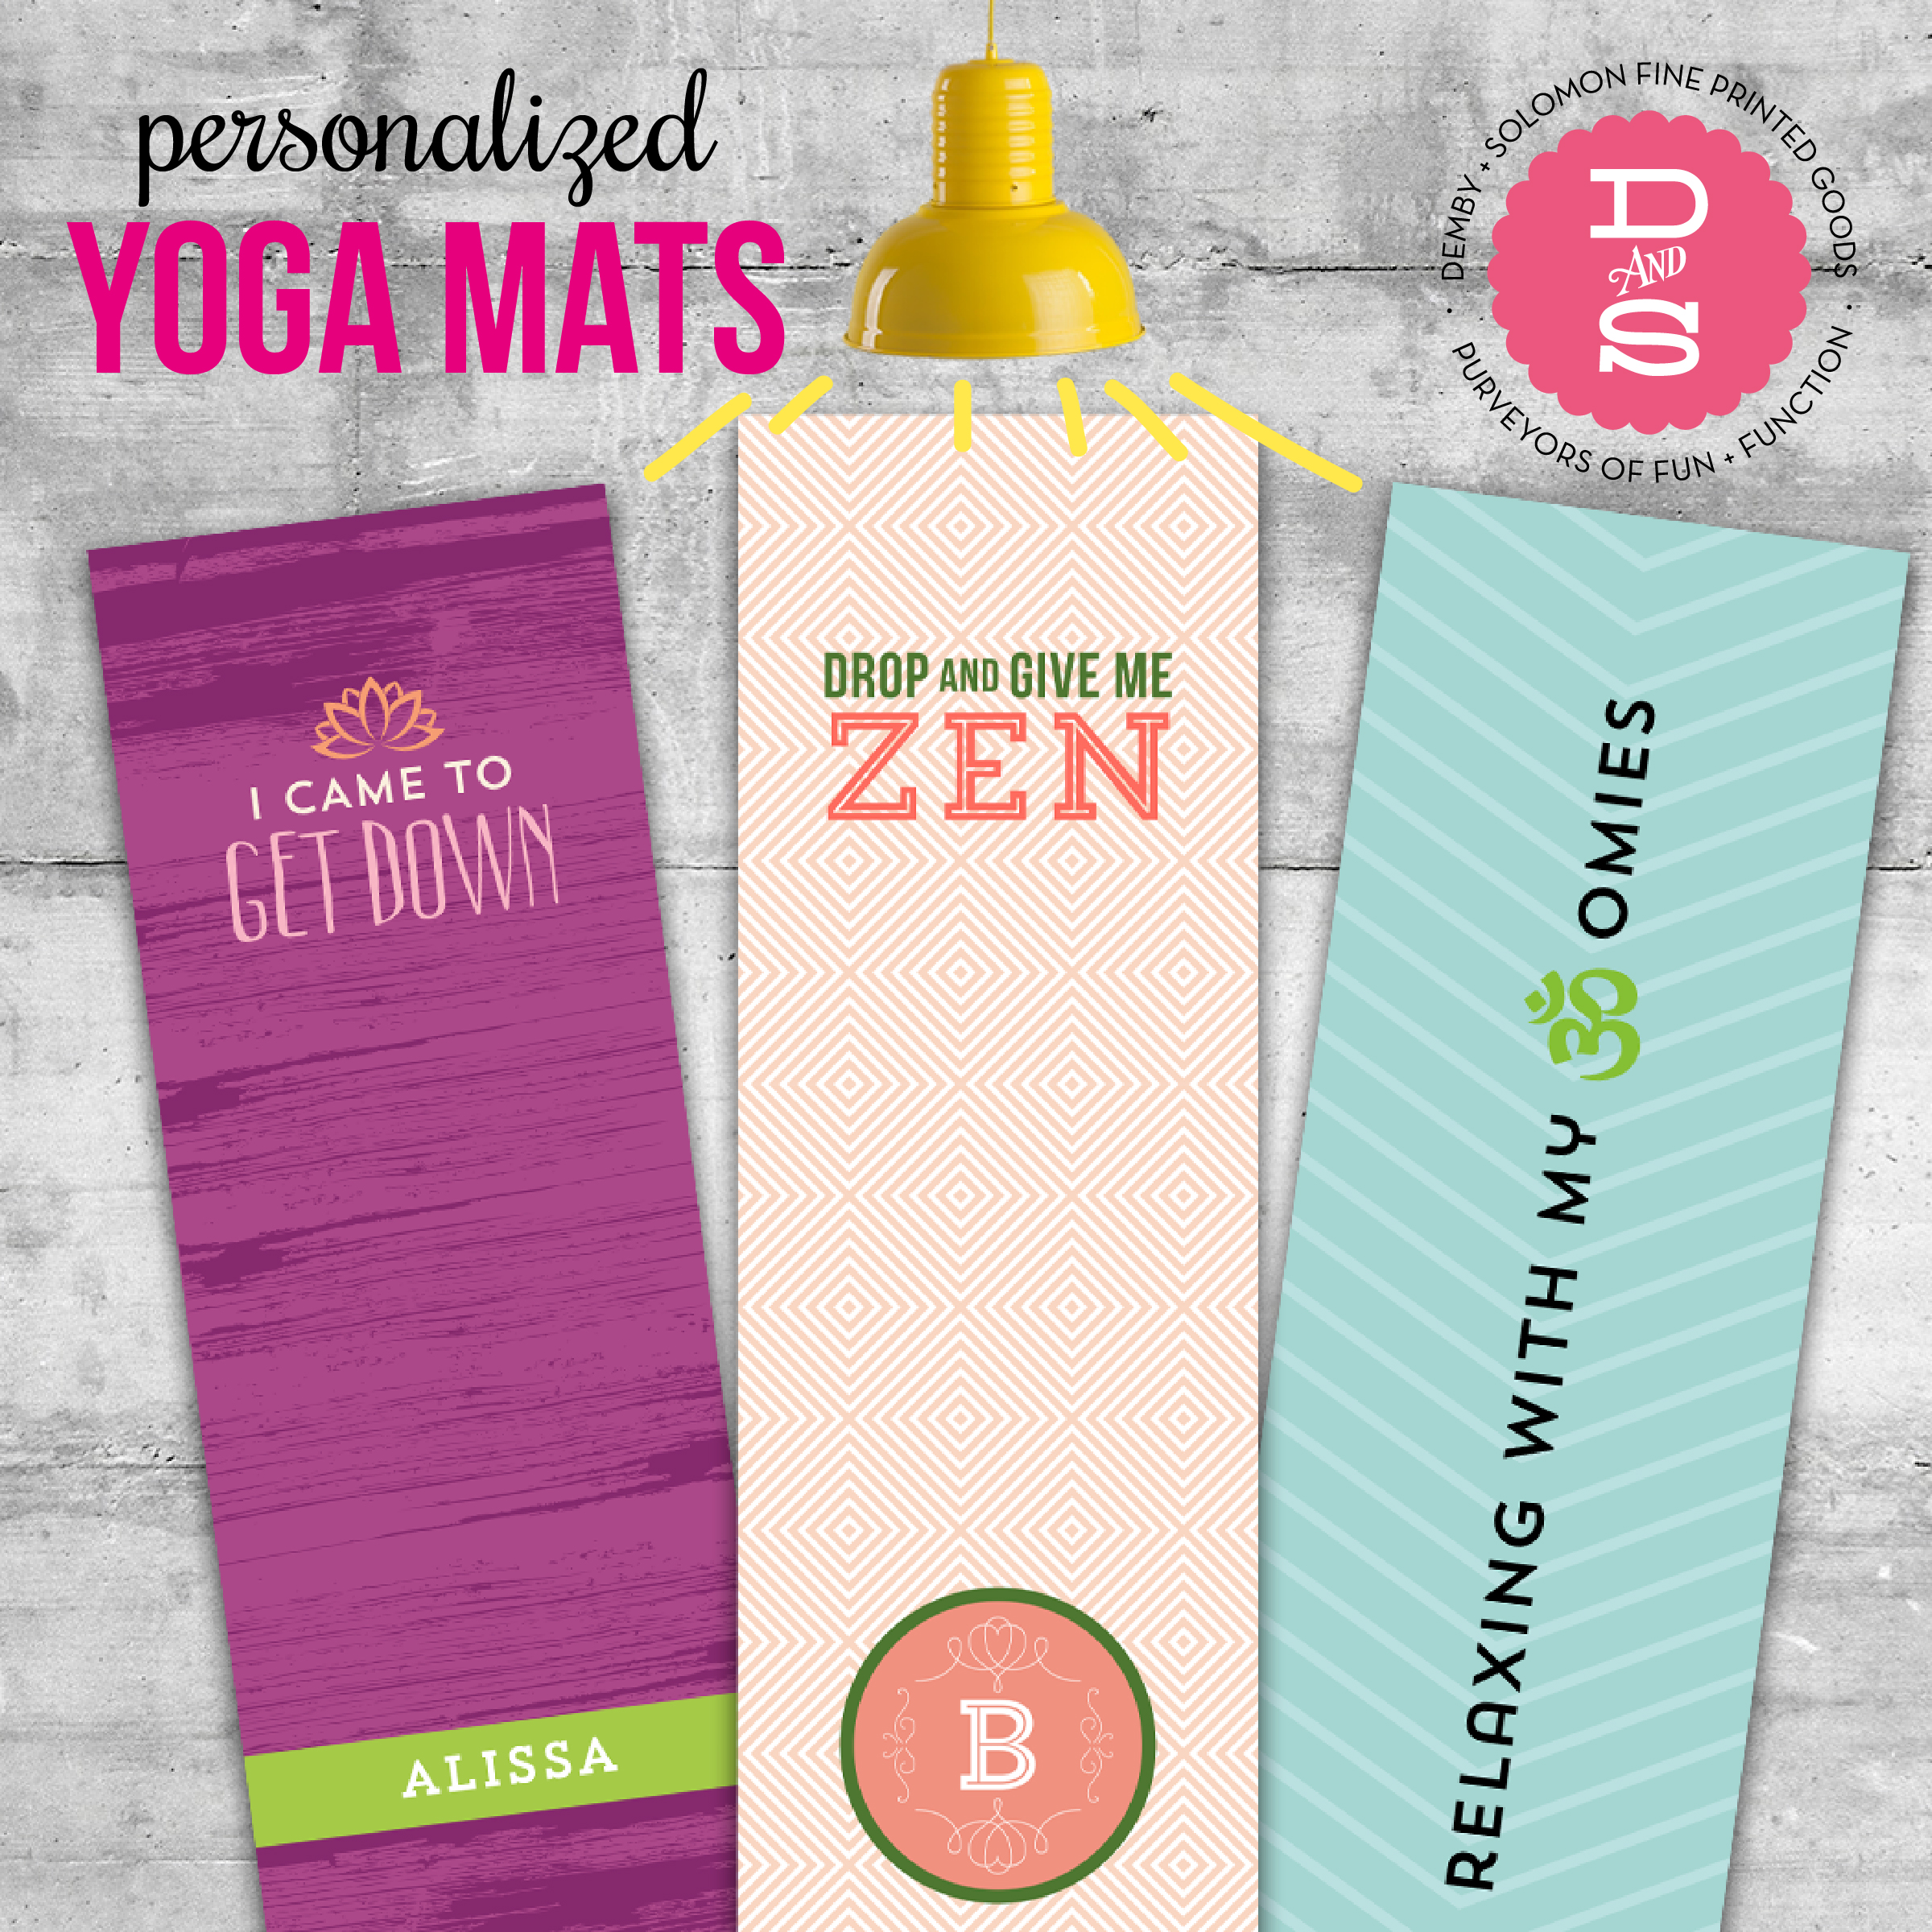 Yoga Mat design and social media promotion